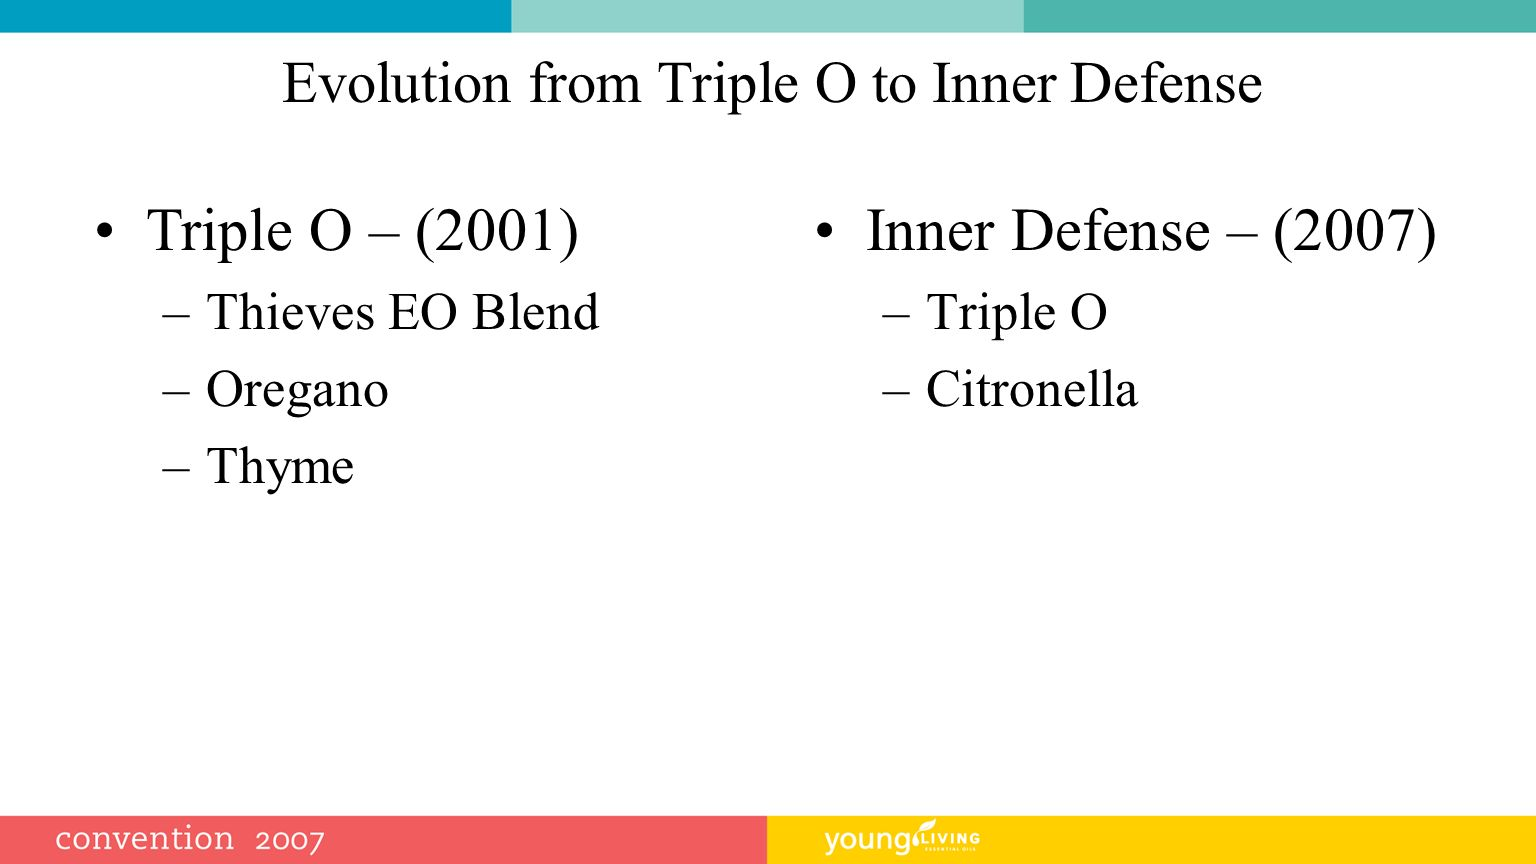 Evolution from Triple O to Inner Defense